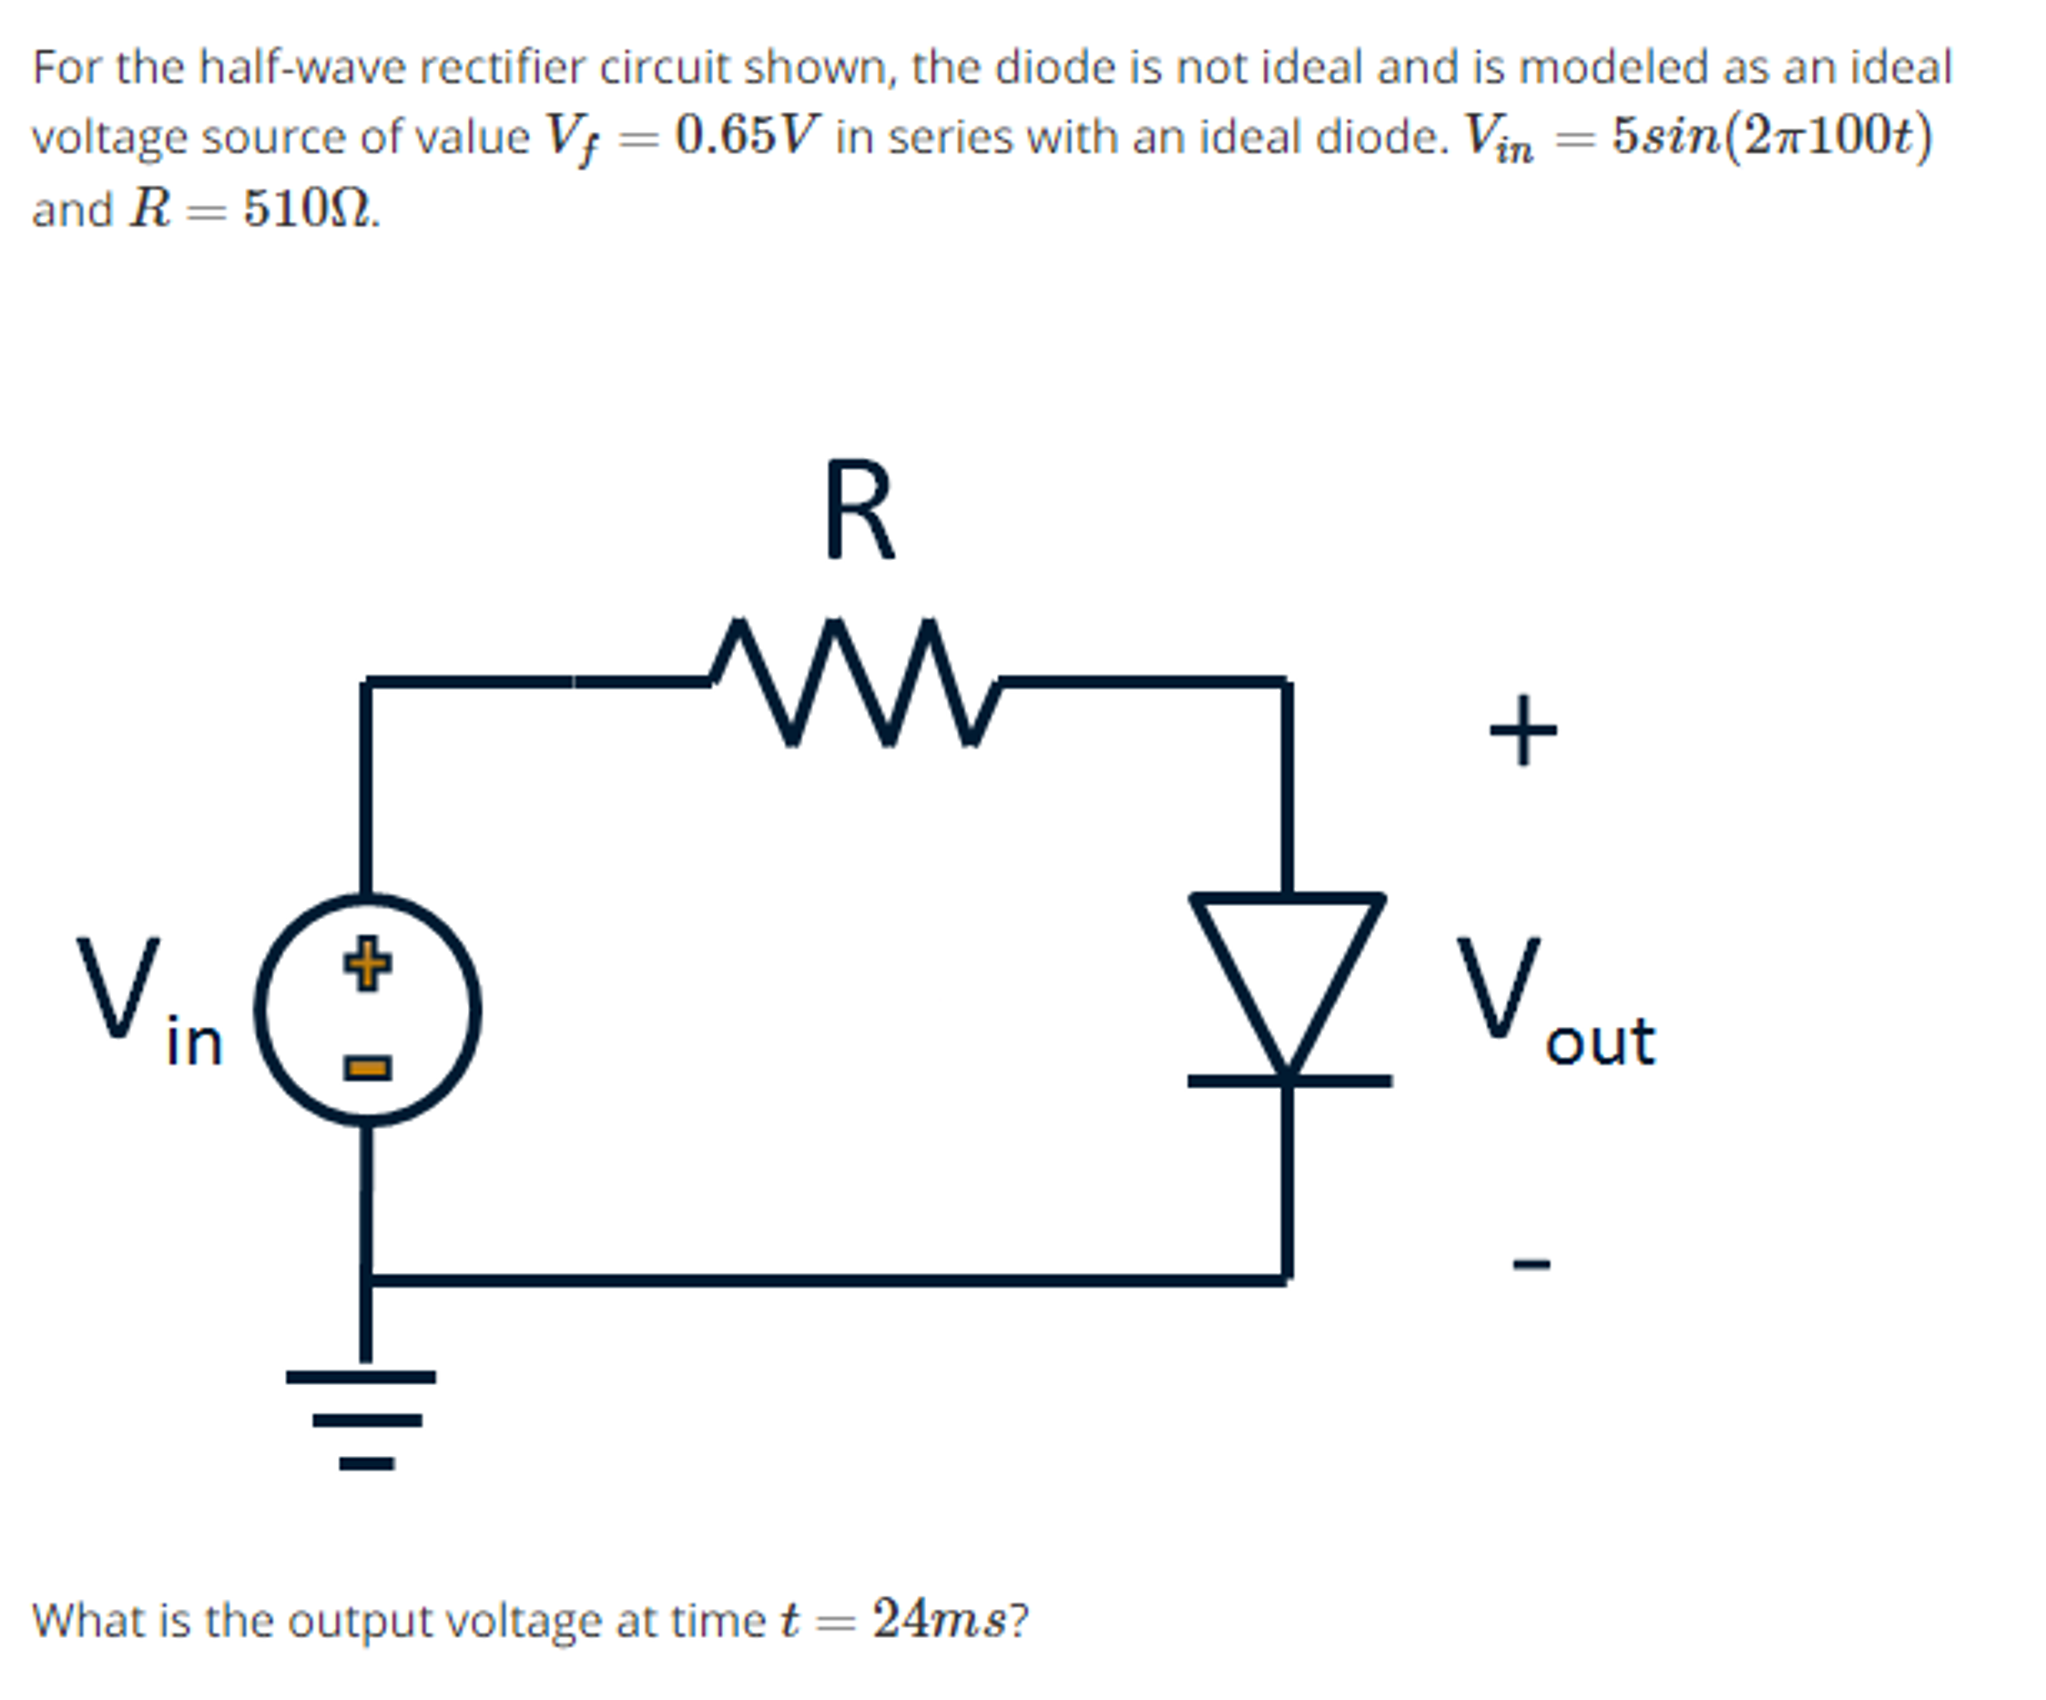 For the half-wave rectifier circuit shown, the dio